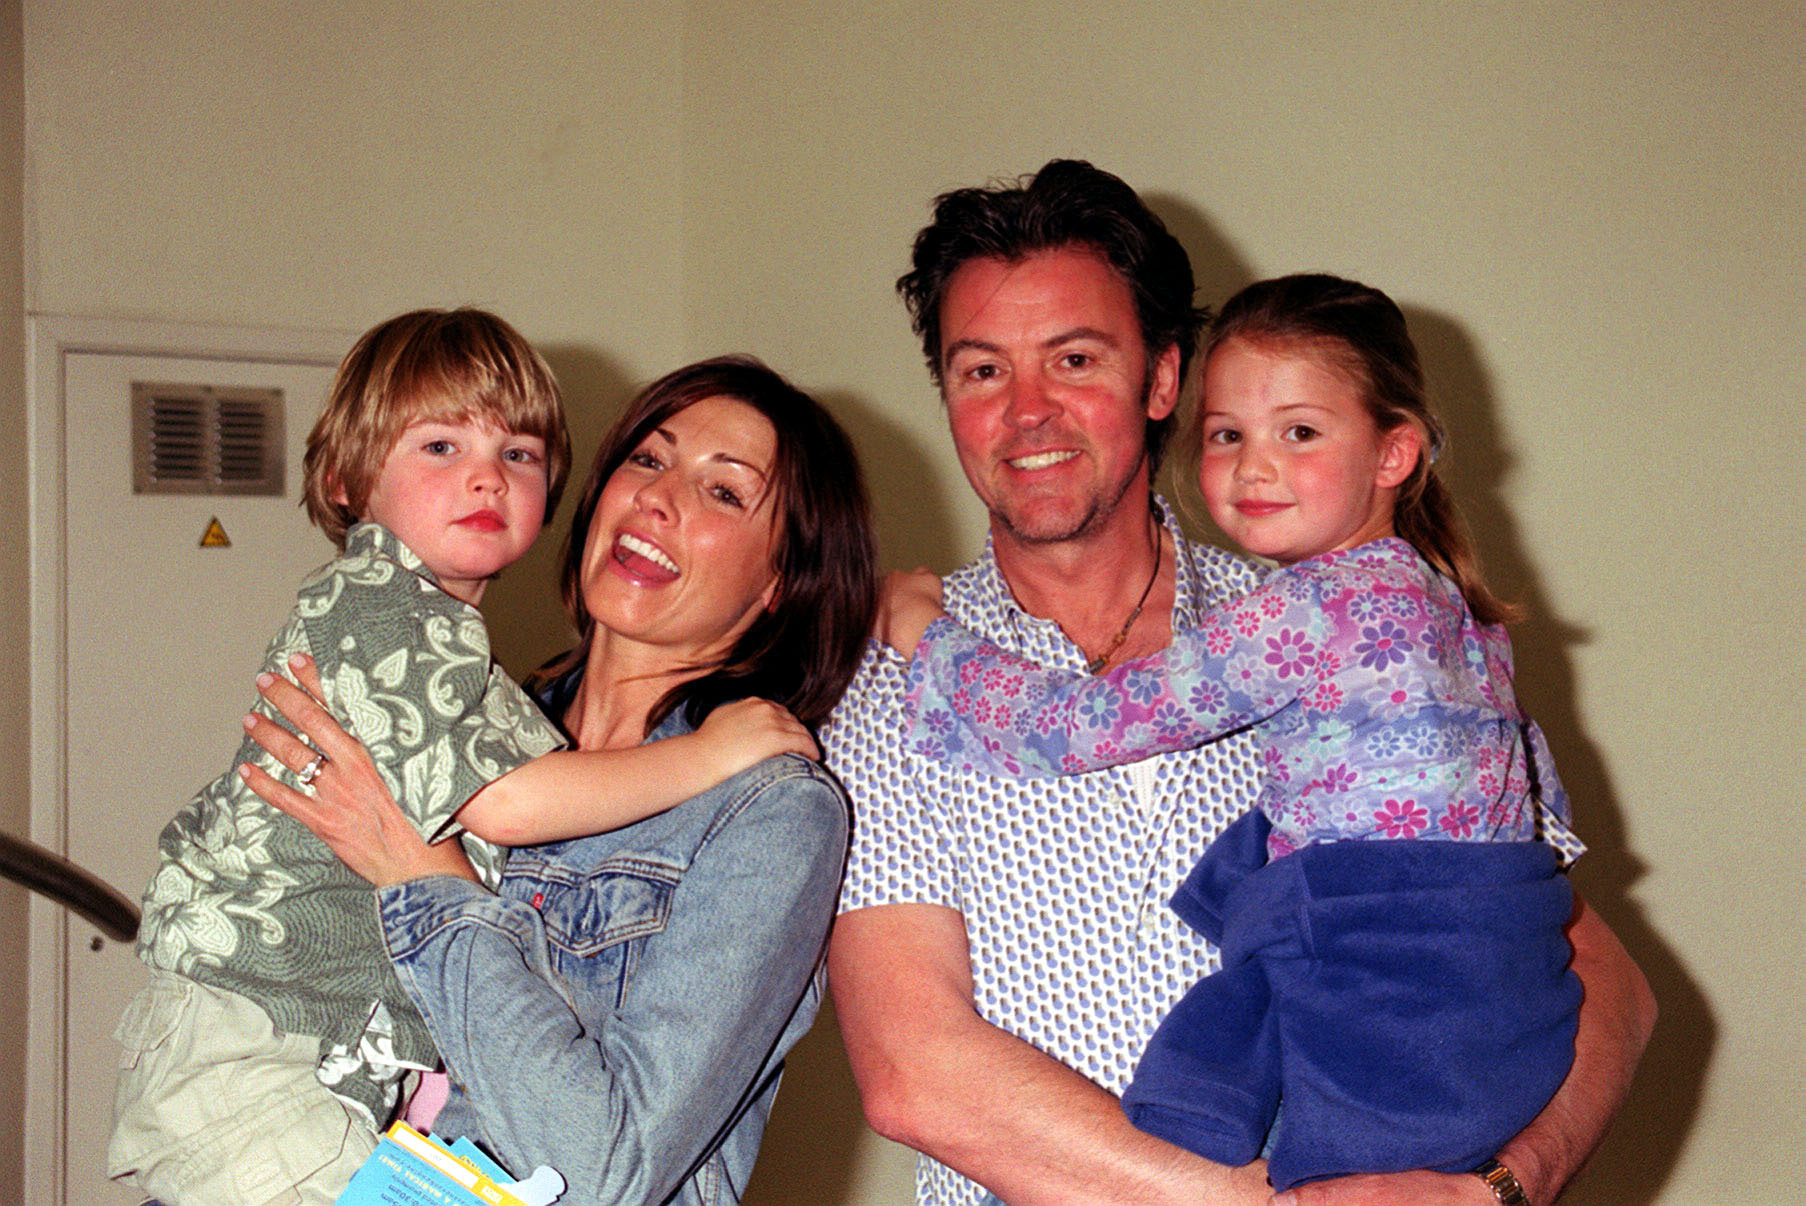 Paul Young and wife Stacey